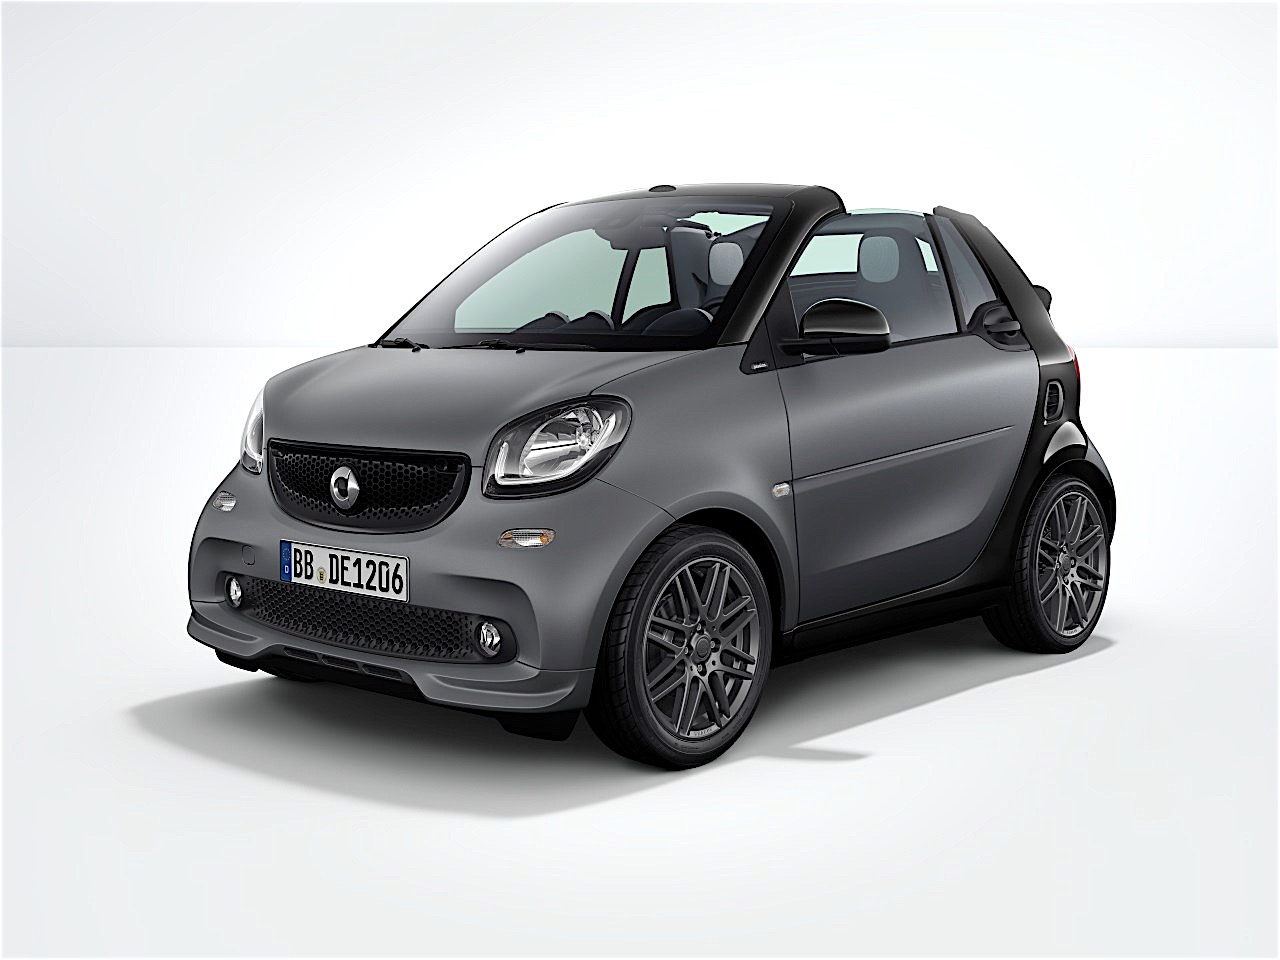 2017 smart fortwo gets brabus sport package for u s. Black Bedroom Furniture Sets. Home Design Ideas